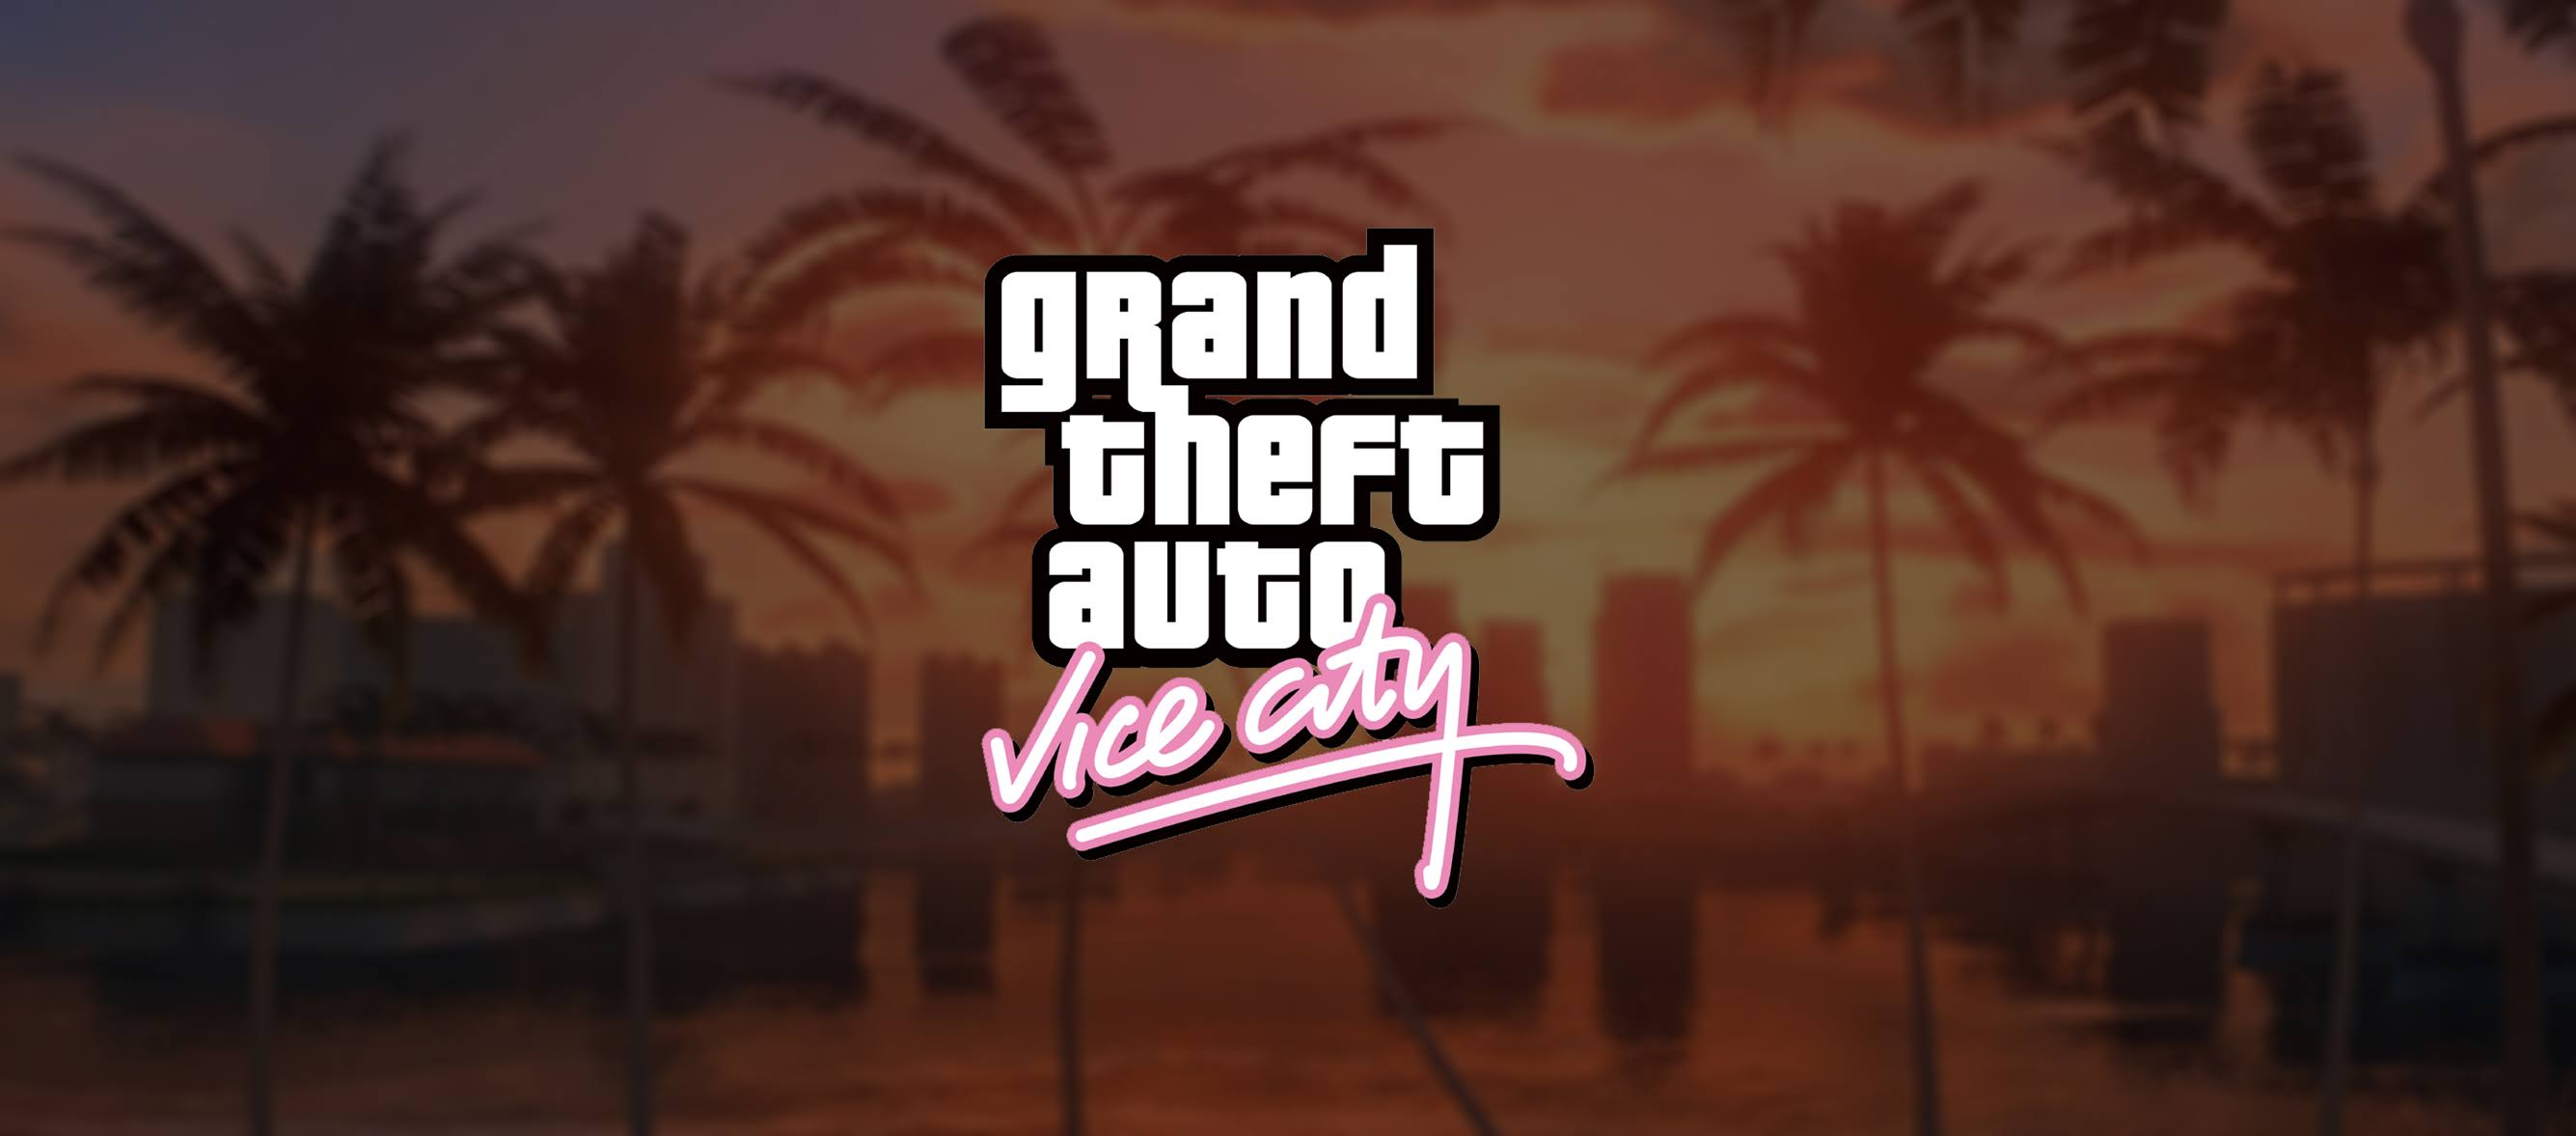 GTA Vice City Music Taste and Popular Song of all time - AdeelDrew music,vice city main music,pop music,party music,roxy music,pop music mix 2020,dance music,romantic music,music video,vice sity,vice city,english music 2020,gta vice city mod,gta vice city intro theme music drums guitar keys saxaphone cover,theme music (musical genre),english music mix 2020,gta vice city,gta: vice city,vice city 2020,2020 vice city,vice city theme,vice city radio,vice city remix,gta music,v-rock vice city,vice city main theme remix,gta vice city 100%,vice city stories song,best pop songs,songs,best pop song,best songs from gta,best gta songs,best gta theme song,best english songs,theme song,best to worst gta theme song,best songs from grand theft auto,english songs,gta vice city theme song,vice city theme song cover,pop songs,gta vice city theme song cover,gta vice city theme song piano,gta vice city piano song,worst gta theme song,best,love songs,gta theme song,best pop music,party songs,gta 1 theme song,gta tlad theme song,best gta soundtrack,best games song,songs,theme song,add song in gta vice city,vice city theme song cover,party songs,how to set any song in gta vice city,english songs,koi bhi song add kero gta vice city me,gta vice city theme song piano tutorial,grand theft auto vice city theme song piano,pop songs,best trick add any song in gta vice city android 2020,love songs,theme songs,song (airline),classic hard rock songs,pop songs 2019,best pop songs,vicev,psone,san andreas theme song,classic hard rock songs playlist waiting for a girl like you,foreigner,foreigner waiting for a girl like you,waiting for a girl like you (musical recording),waiting for a girl like you foreigner,foreigner waiting for a girl like you reaction,waiting for a girl like you - foreigner,foreigner - waiting for a girl like you,waiting for a girl like you video,foreigner - waiting for a girl like you (hd),foreigner waiting for a girl like you army,foreigner waiting for a girl like you español